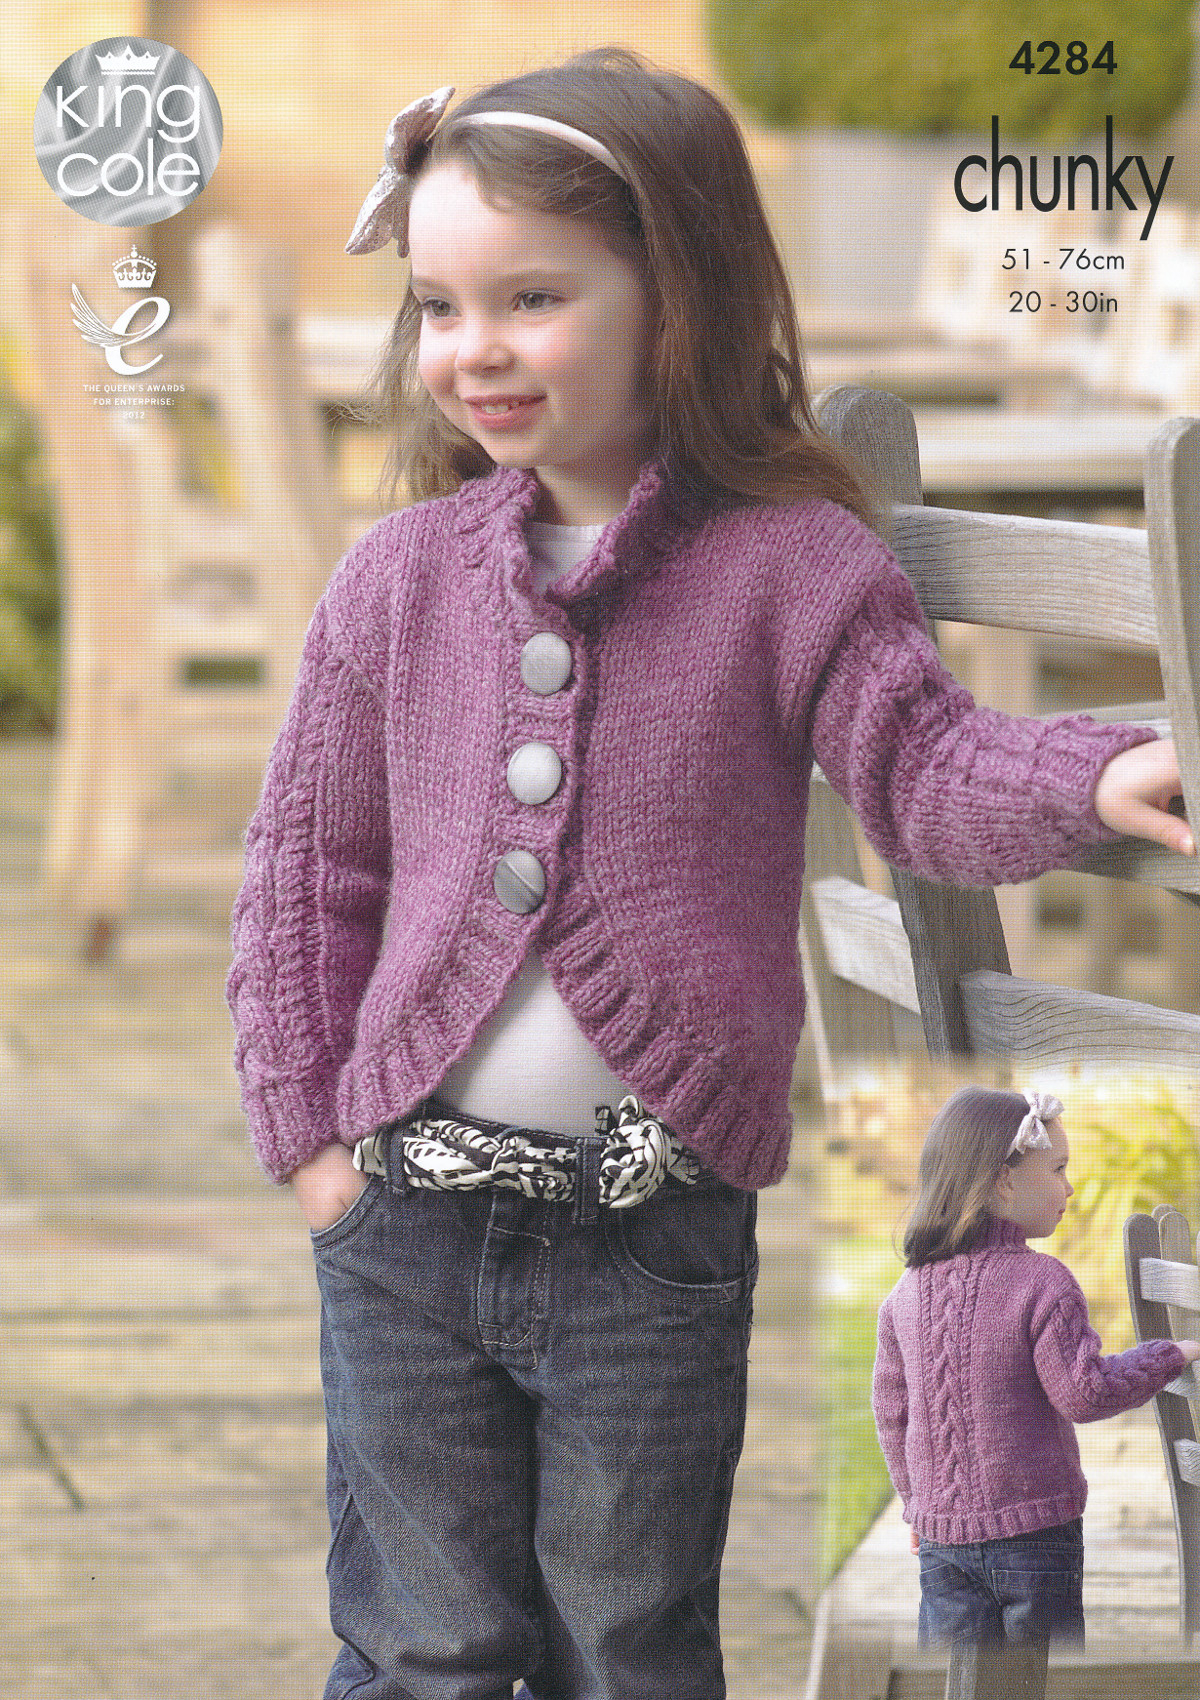 Knitting Patterns For Childrens Sweaters Free Details About Kids Chunky Knitting Pattern King Cole Childrens Collar V Neck Cardigans 4284